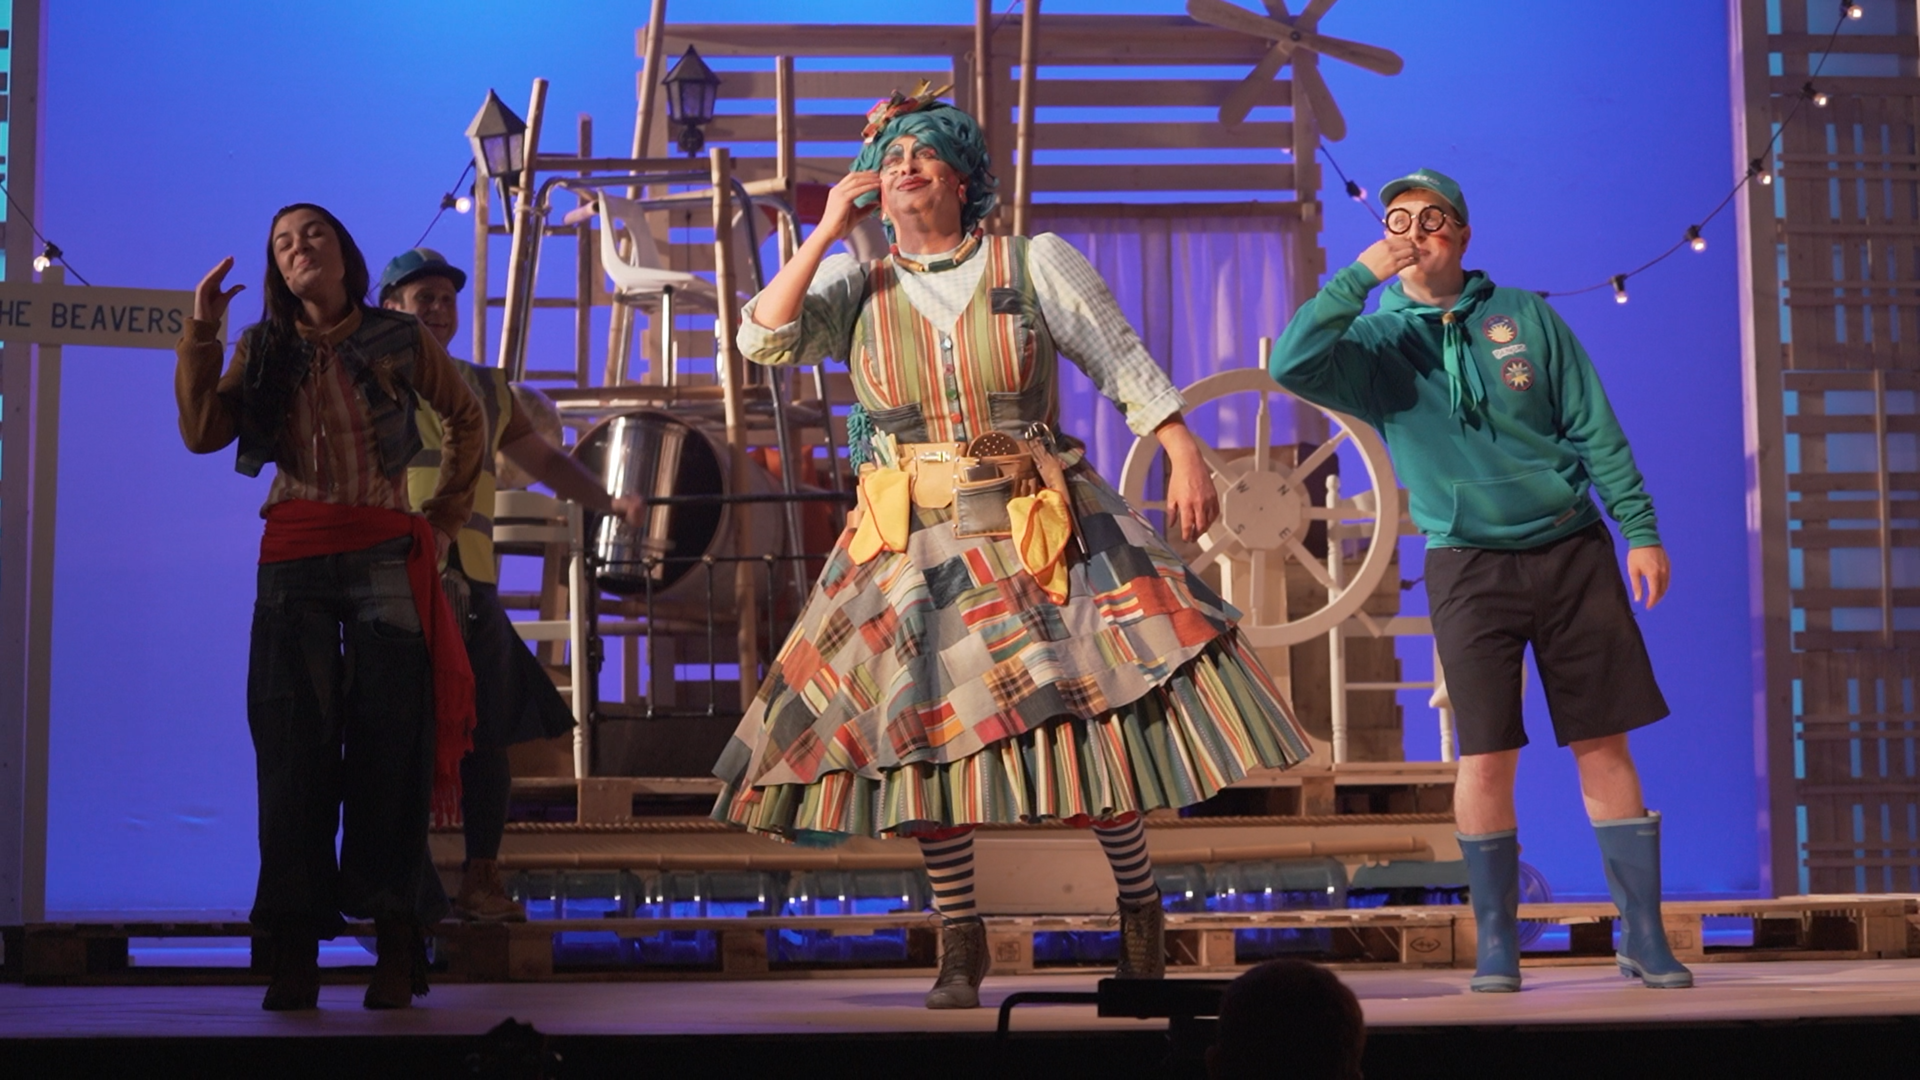 Perth Panto Trailer Creation – video and edit